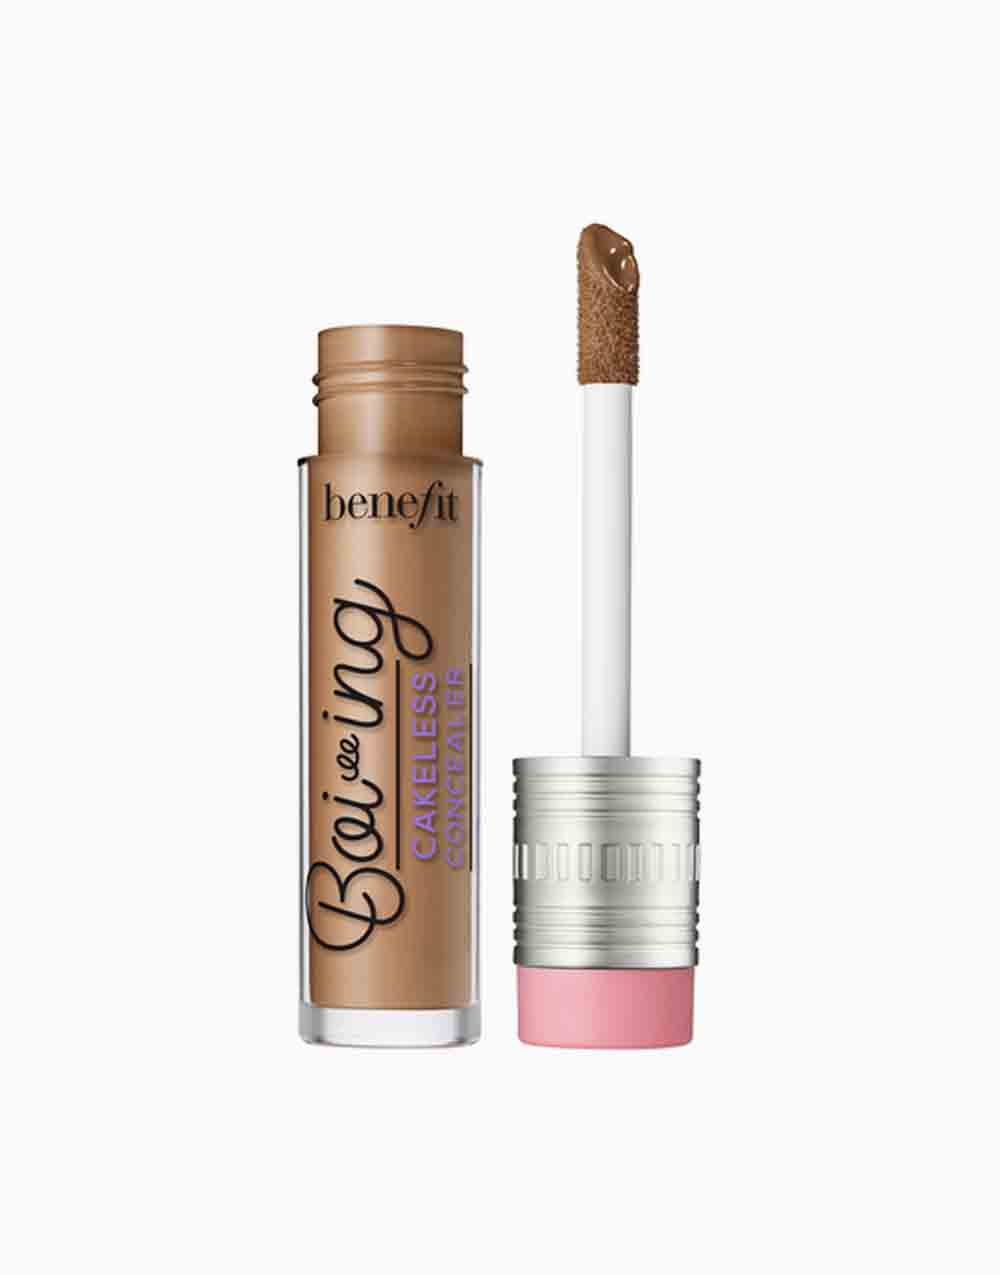 Boi-ing Cakeless Concealer by Benefit | Shade 10